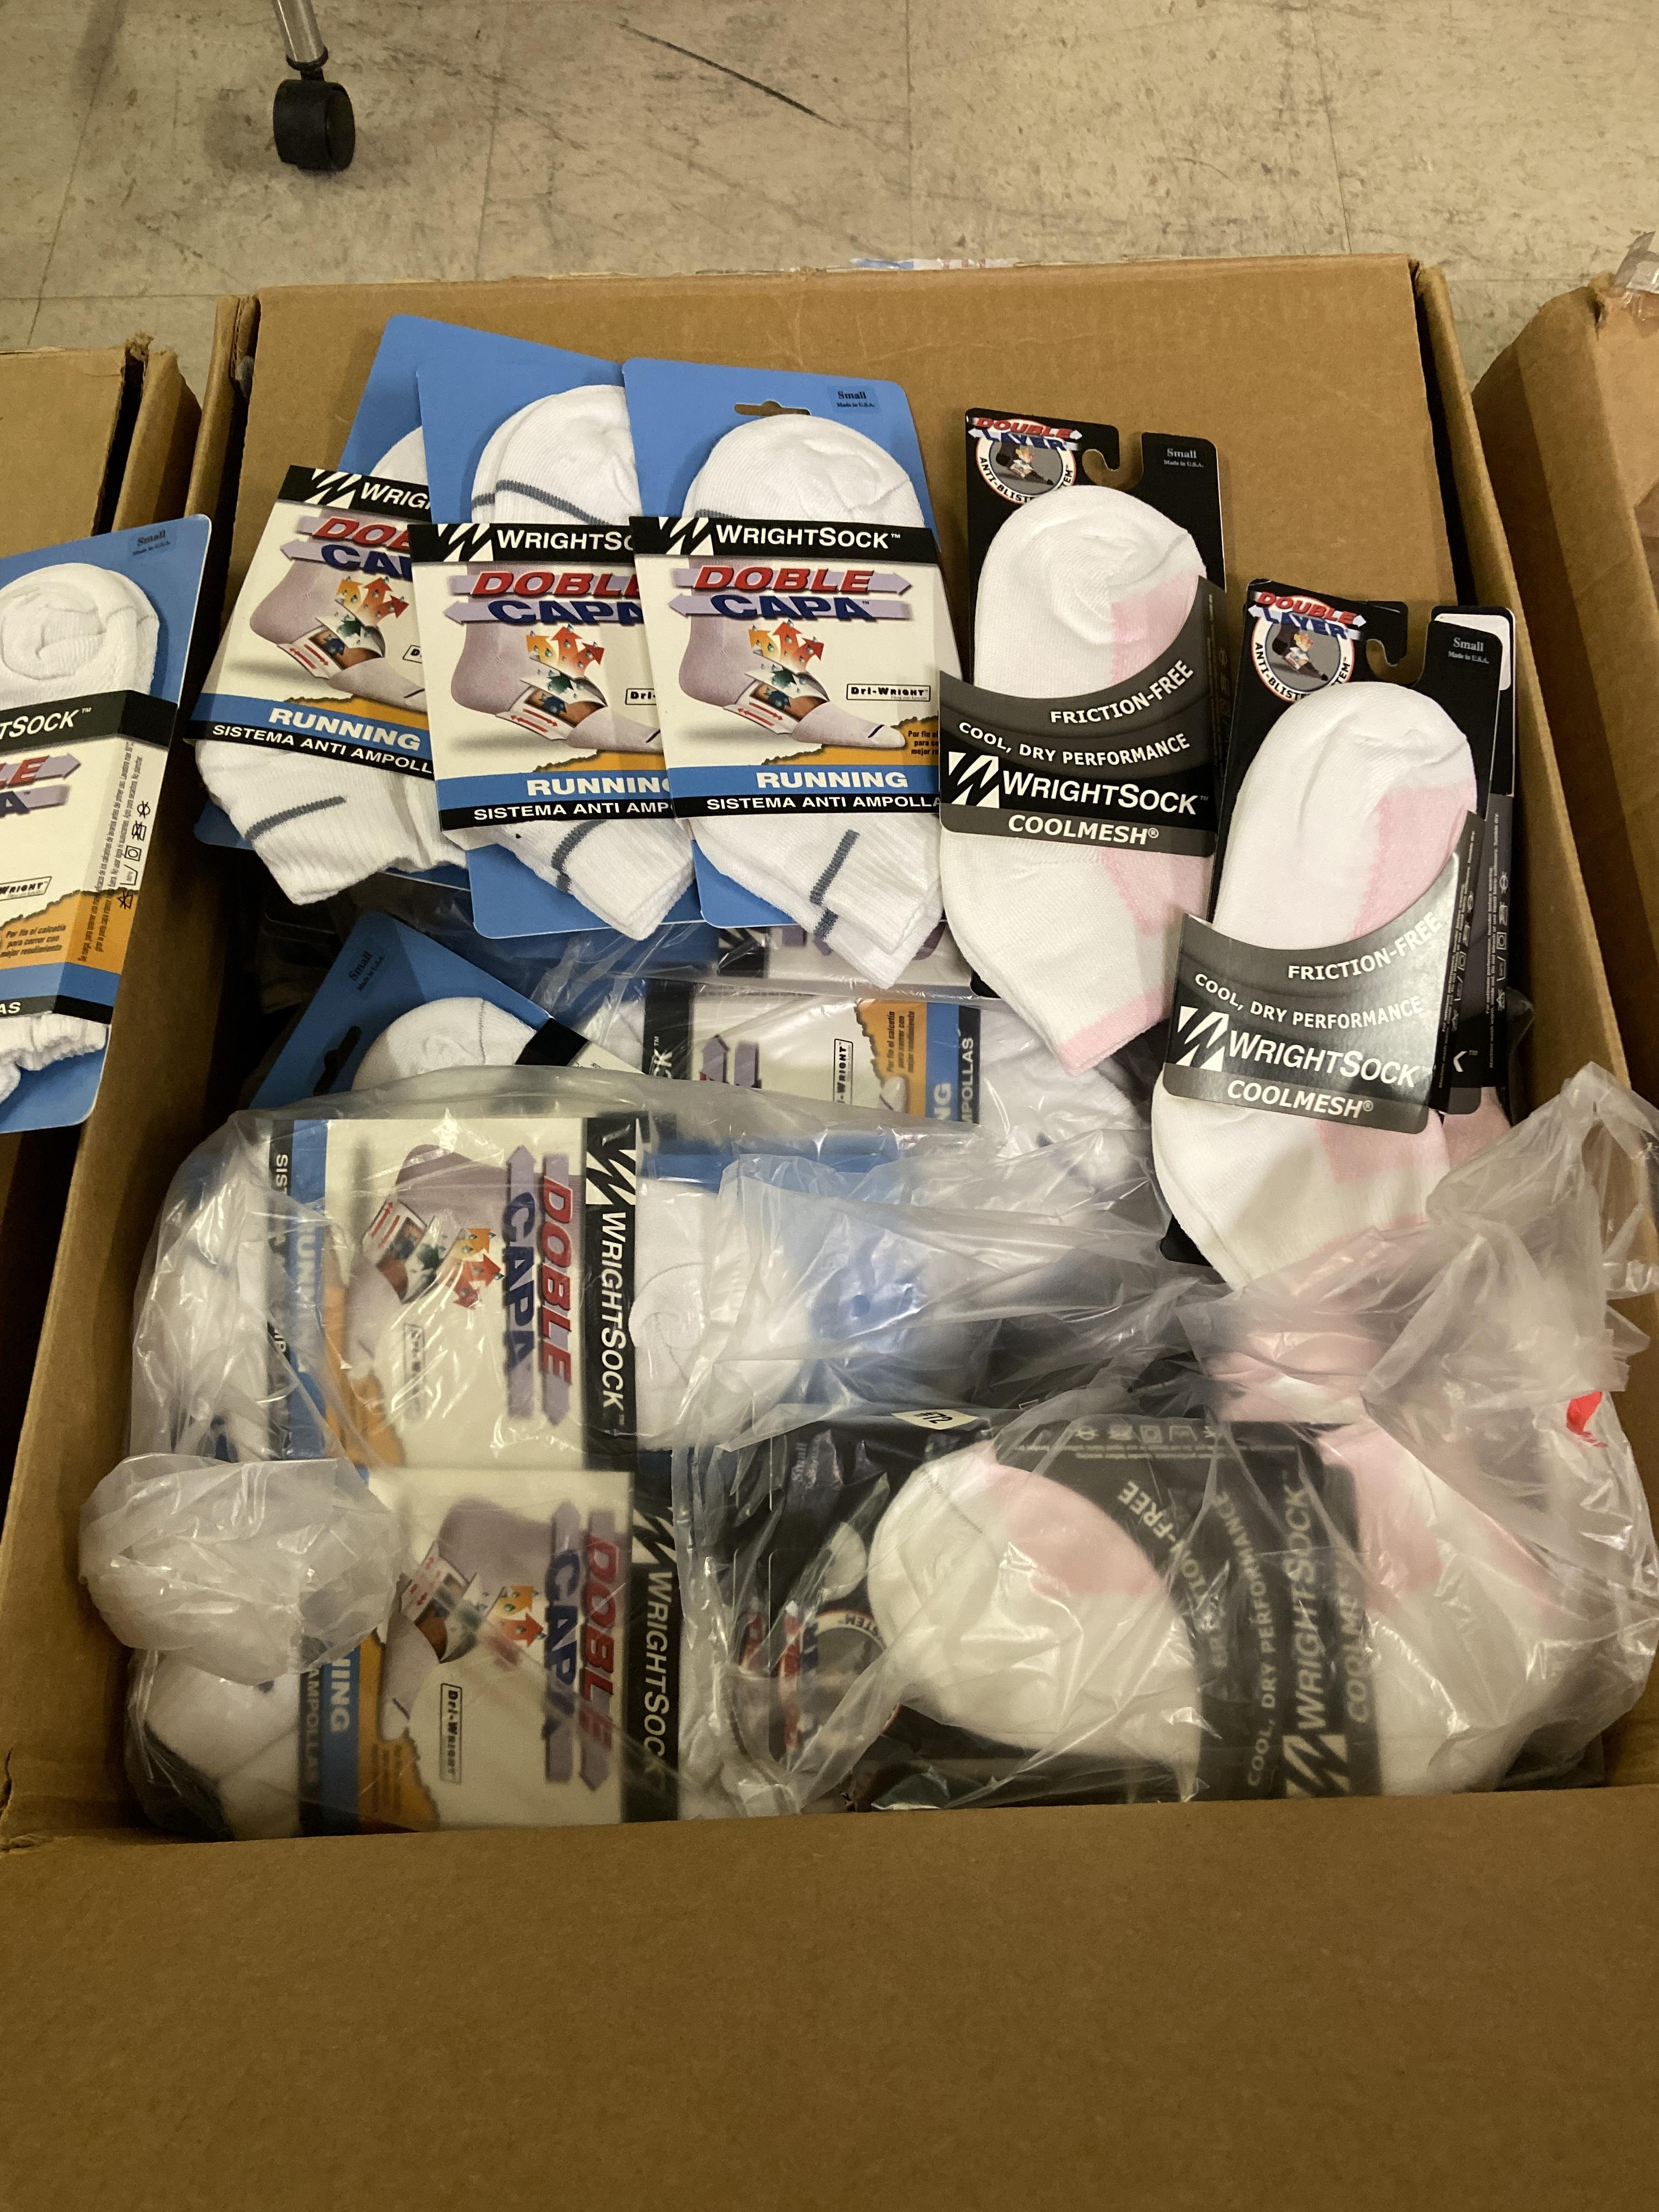 500+ packs of New Socks, Wrightsock Running and Coolmesh, Double Layer, White w. Various Stripes - Image 2 of 7